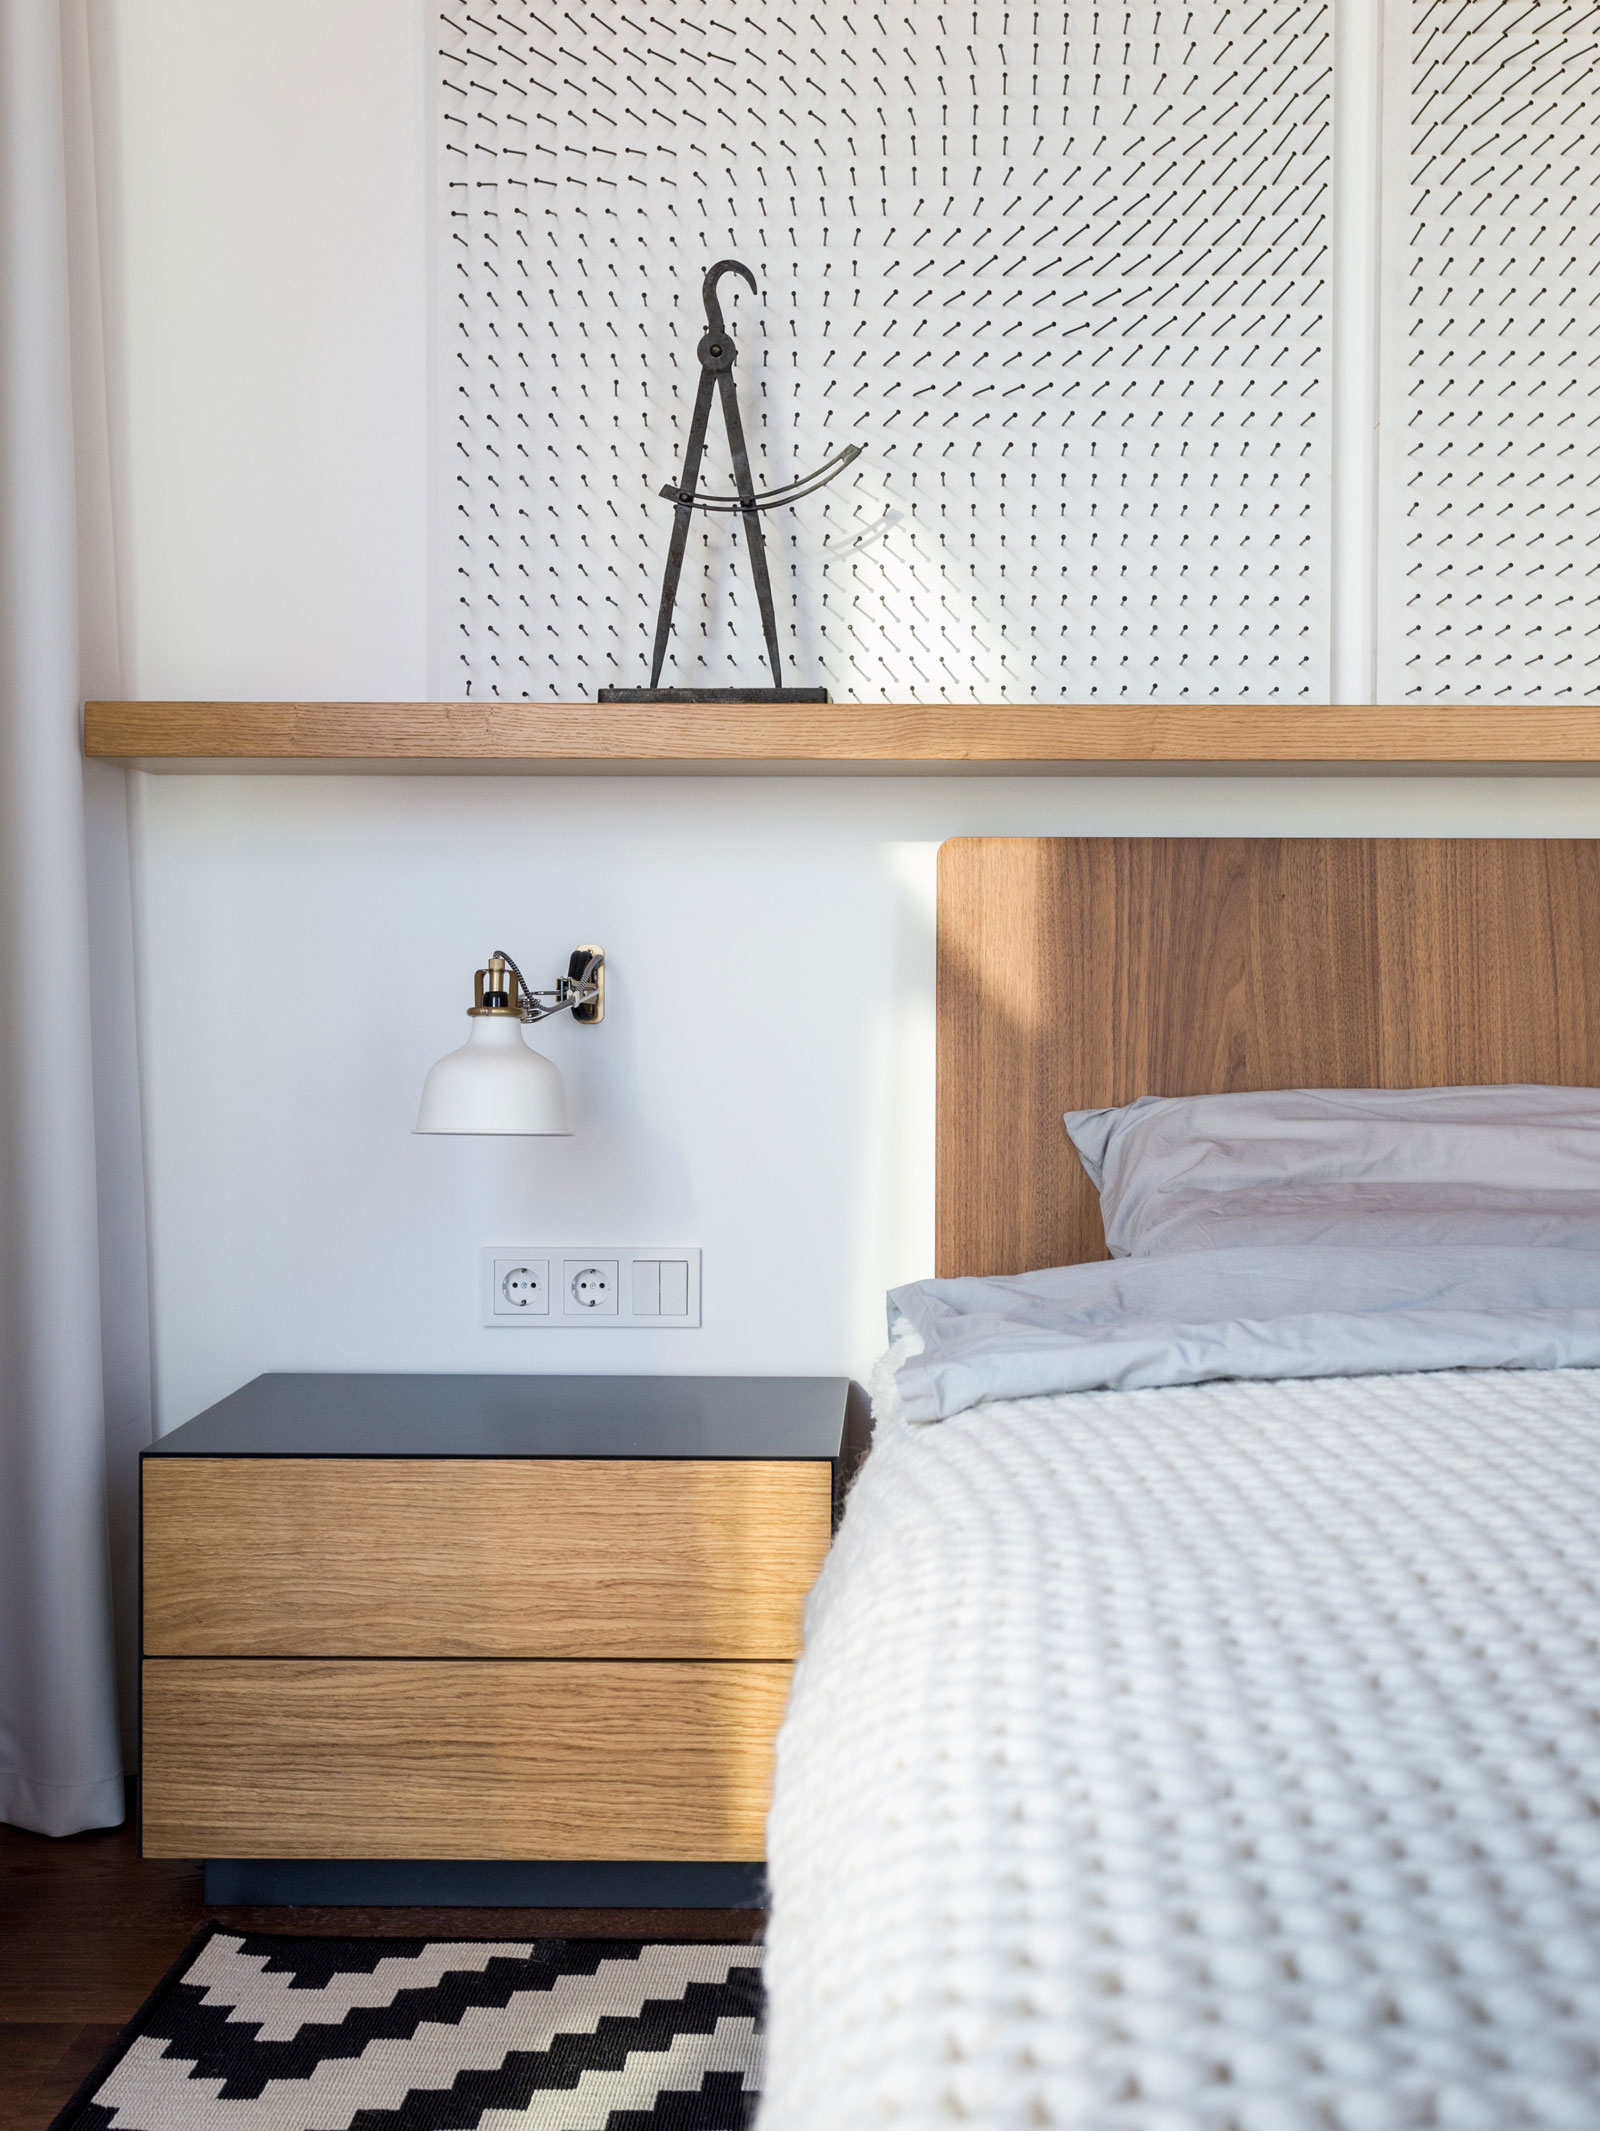 Wooden bedroom furniture by SVOYA Studio